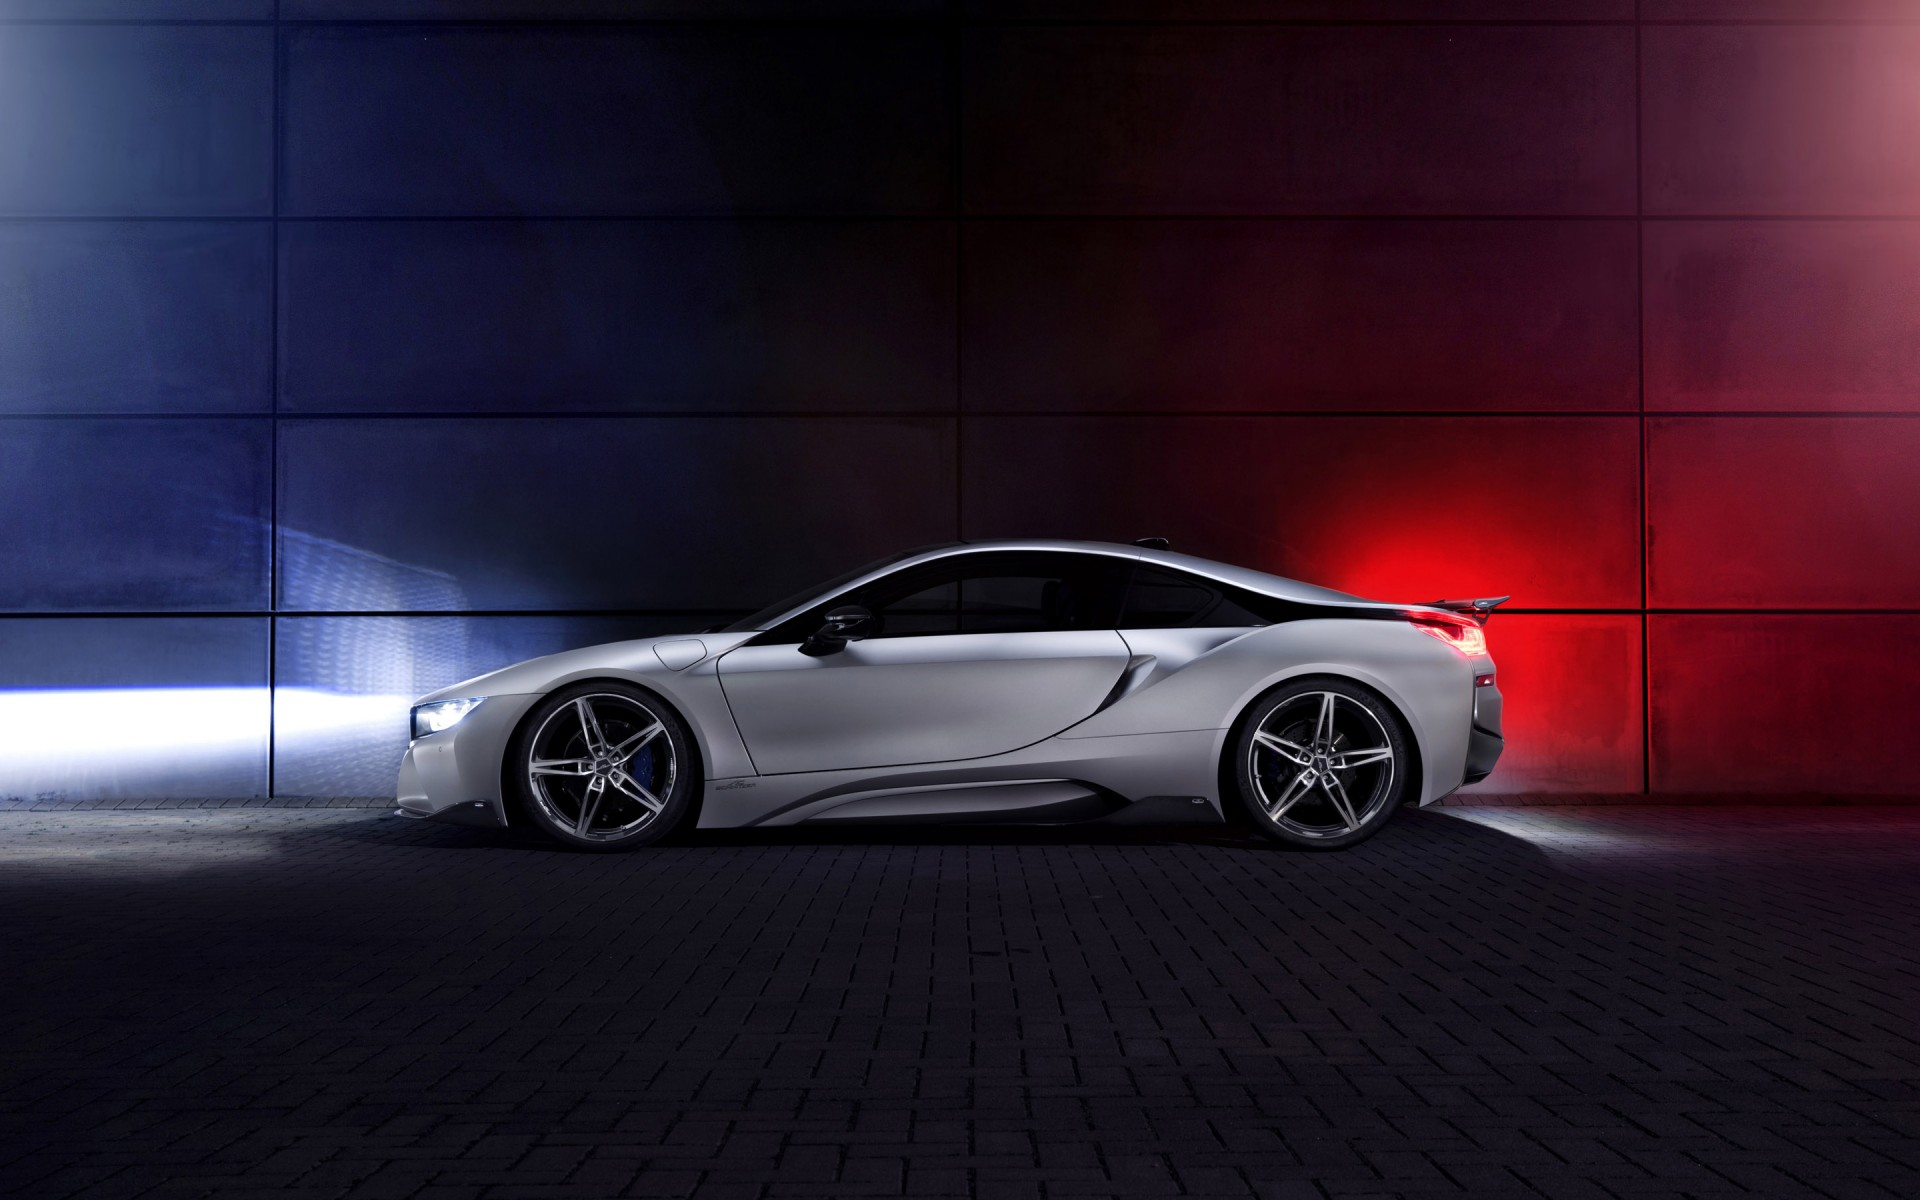 Download Black Wallpaper For Android 2015 Ac Schnitzer Bmw I8 3 Wallpaper Hd Car Wallpapers